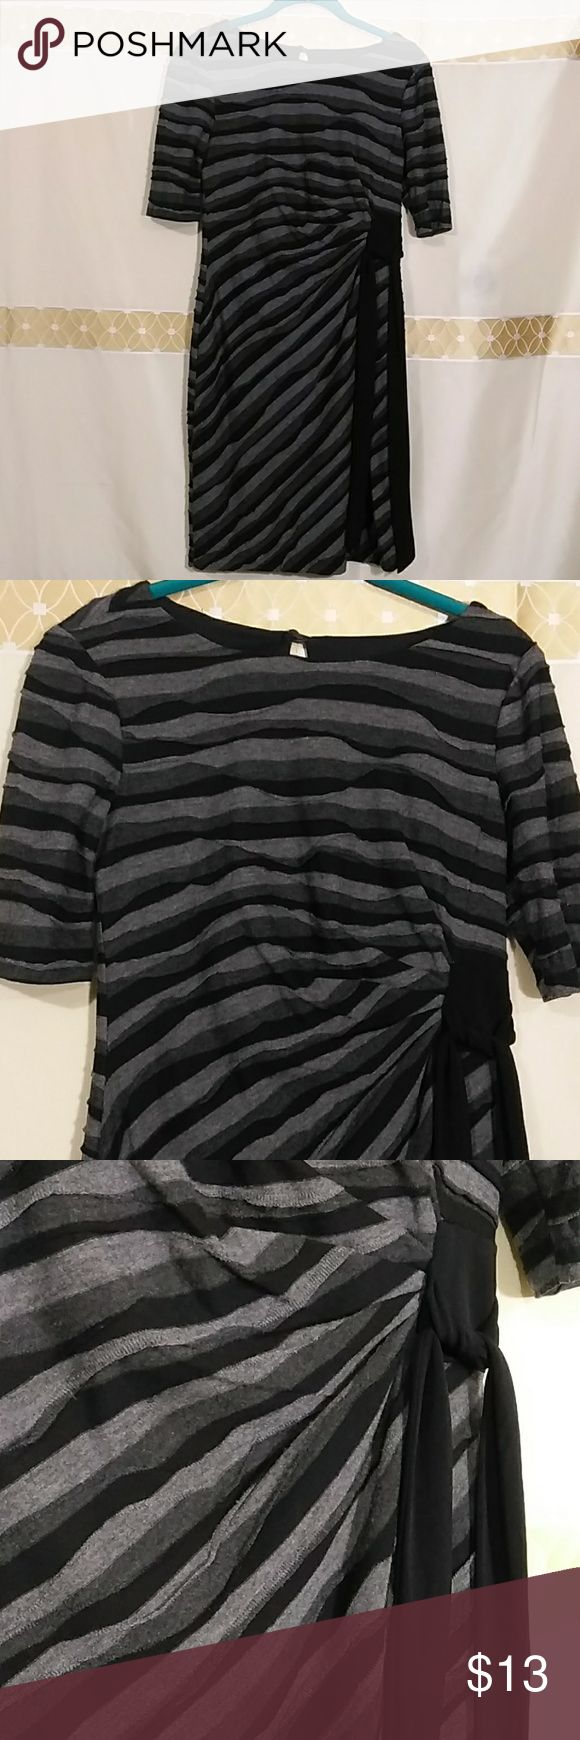 Layered zebra Print dress I-243 Career woman dress/casual. Long sleeve  color gray and black layered sewn. Rouching on the side and fabric to tie a ribbon. Great condition.  Measurements laying flat  Bust:16 inches Waistline :14 inches Length:36 inches Sleeve:11 inches Connected Apparel Dresses Long Sleeve